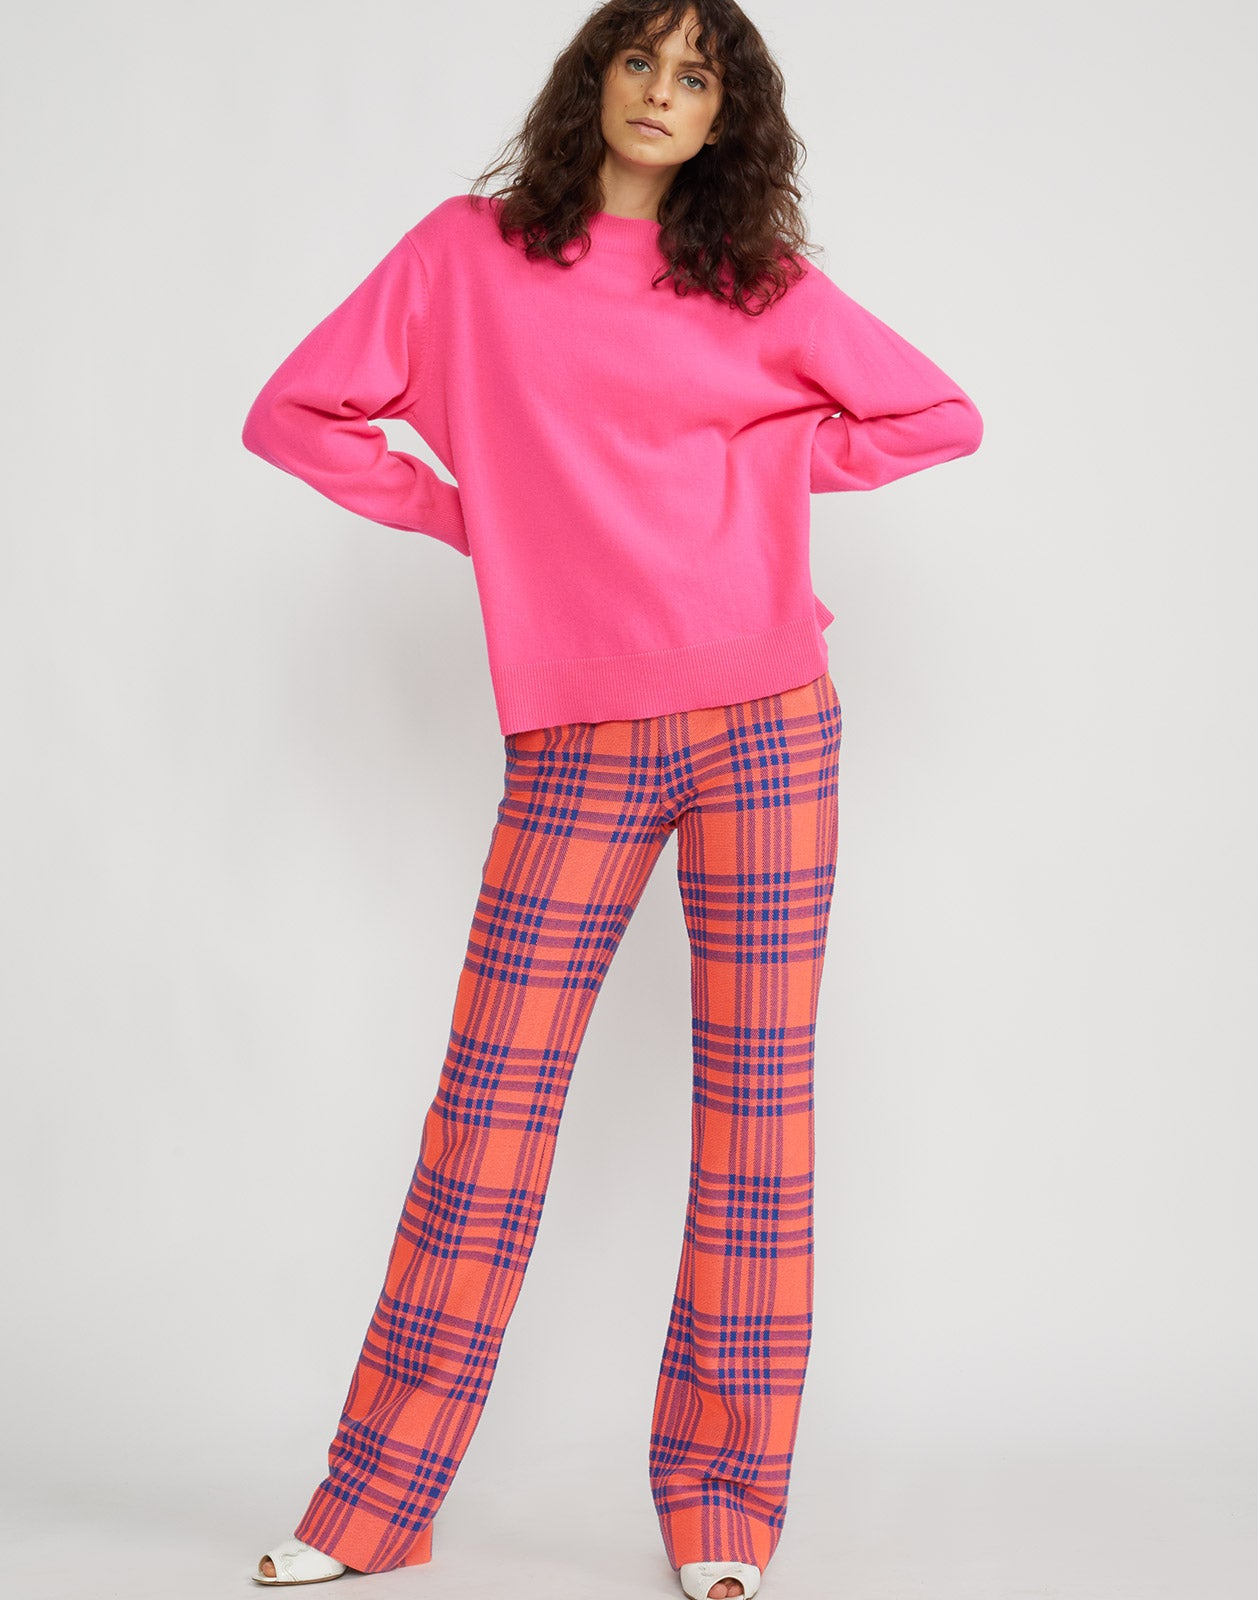 Full front view of model wearing Carson stretch plaid pants.